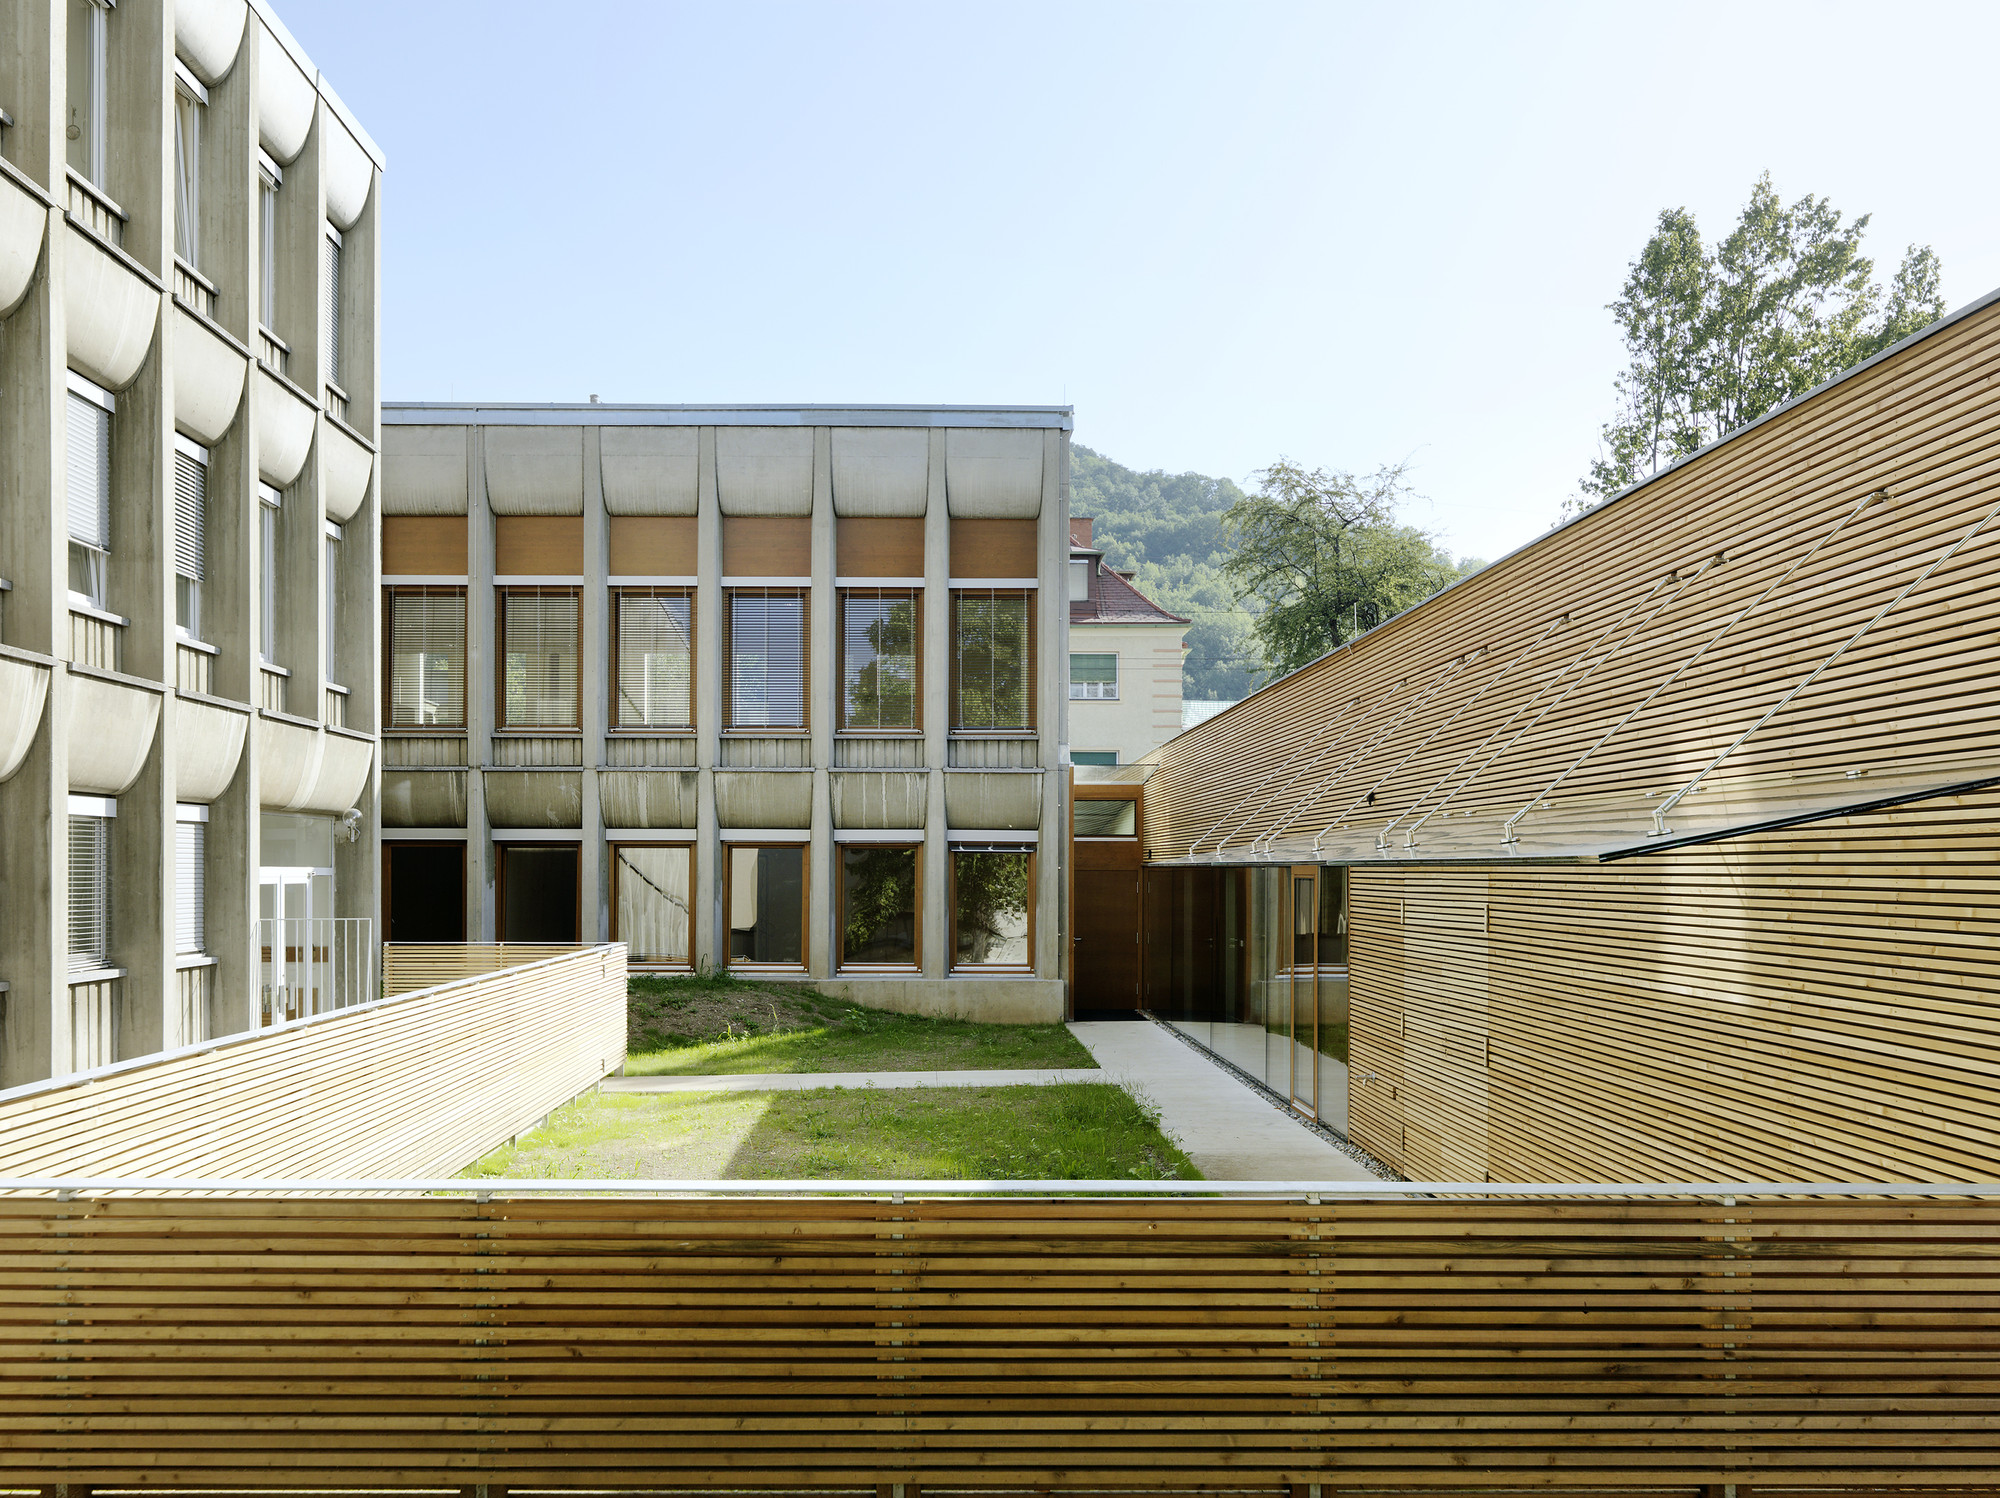 Kindergarten St. Salvator Graz / Reitmayr Architekten, © Paul Ott